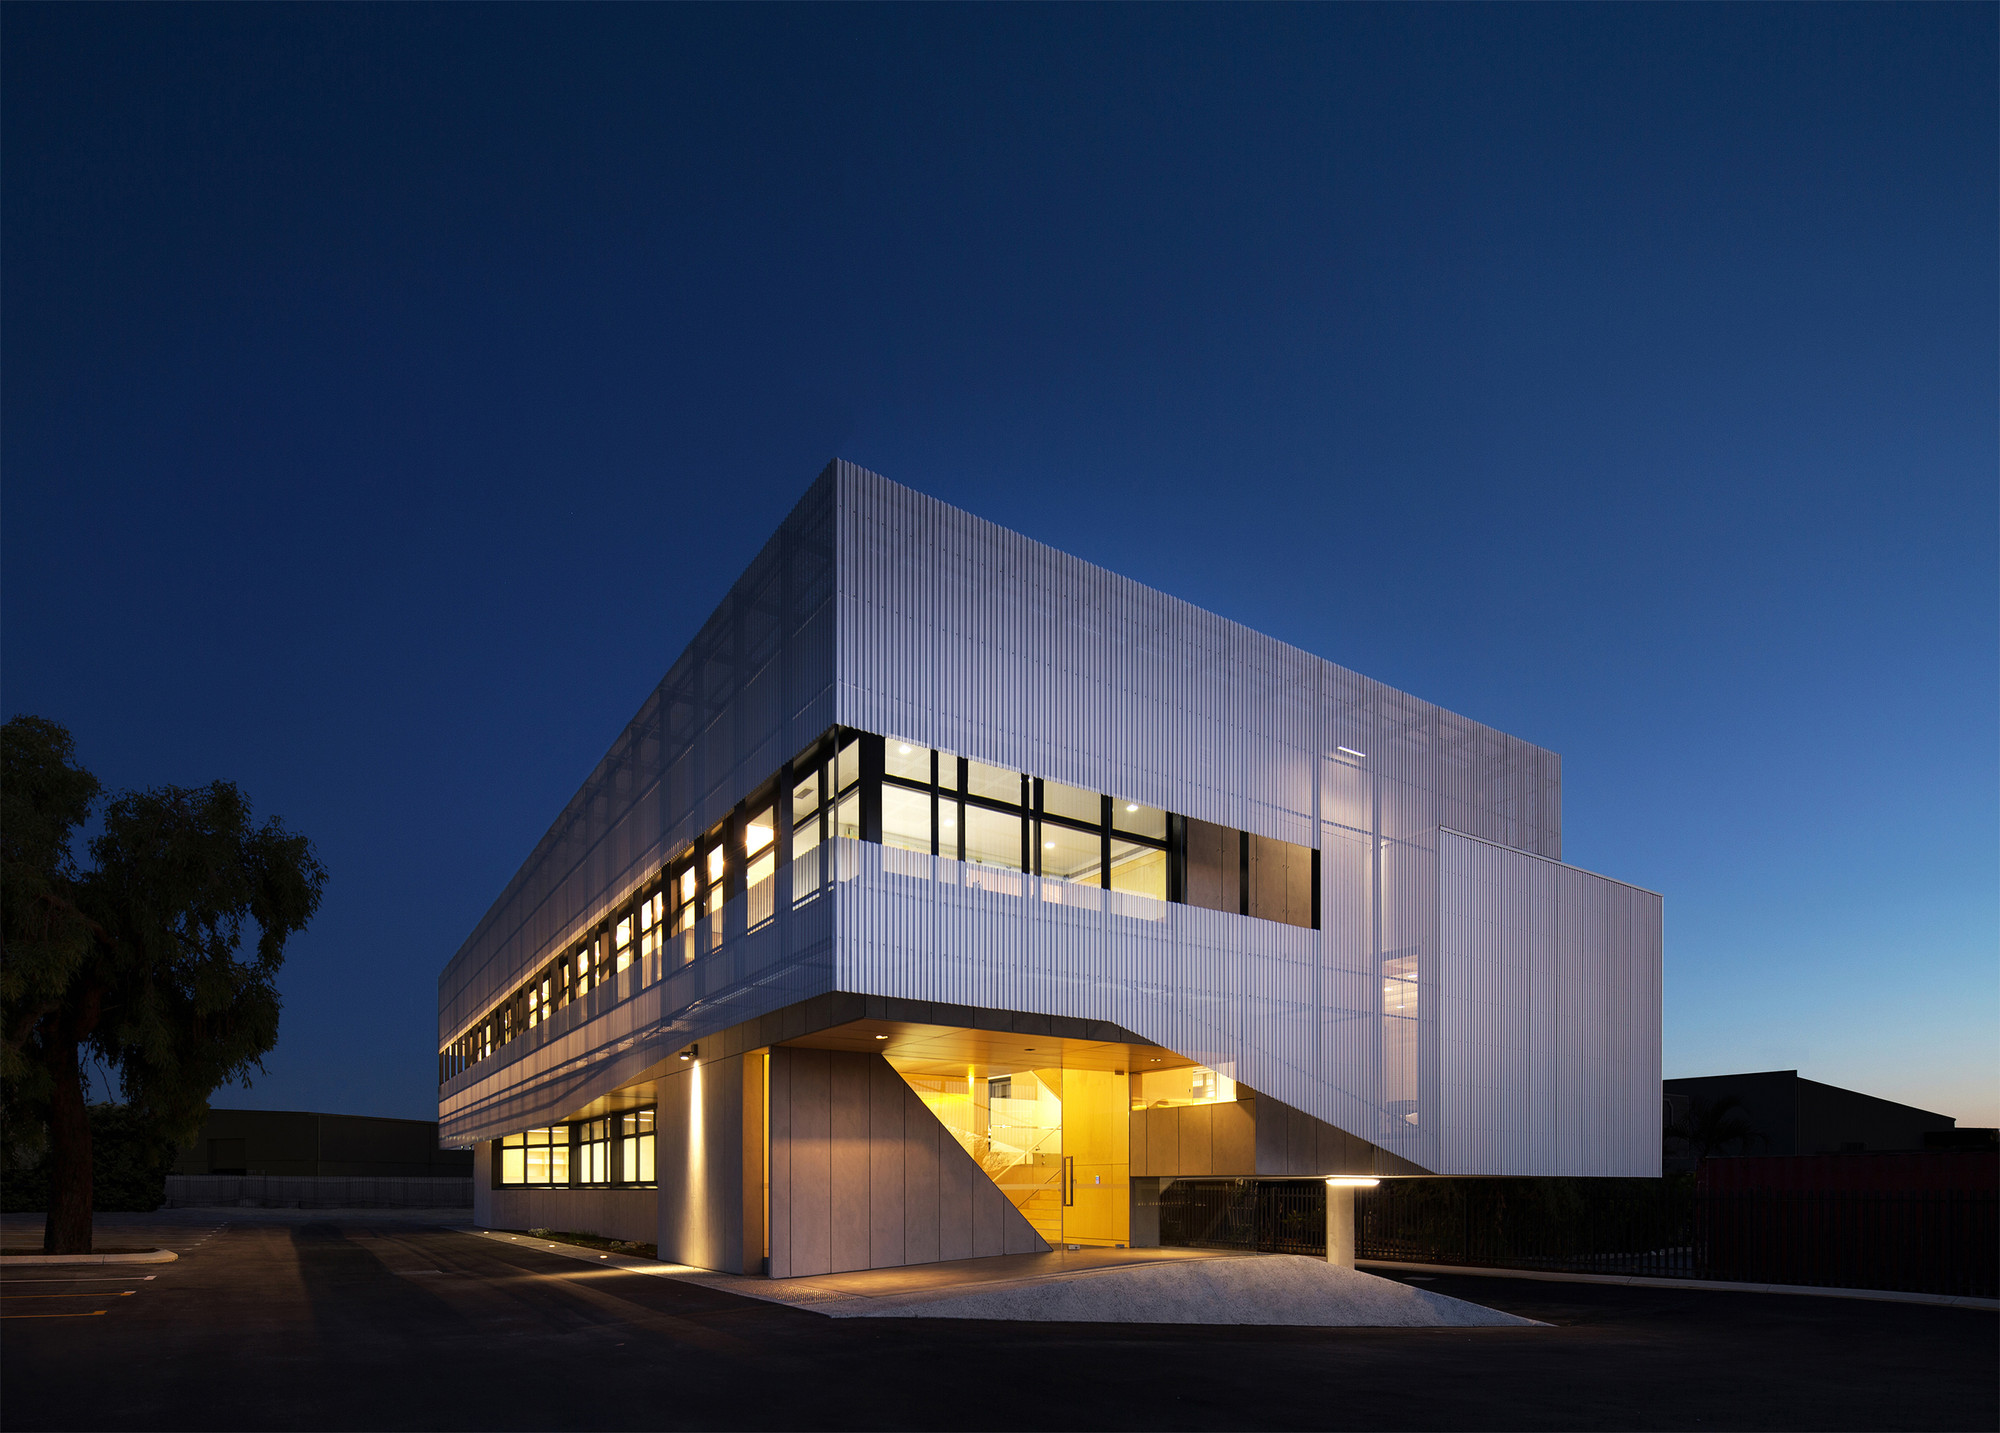 Sanwell office building braham architects archdaily for Building design images